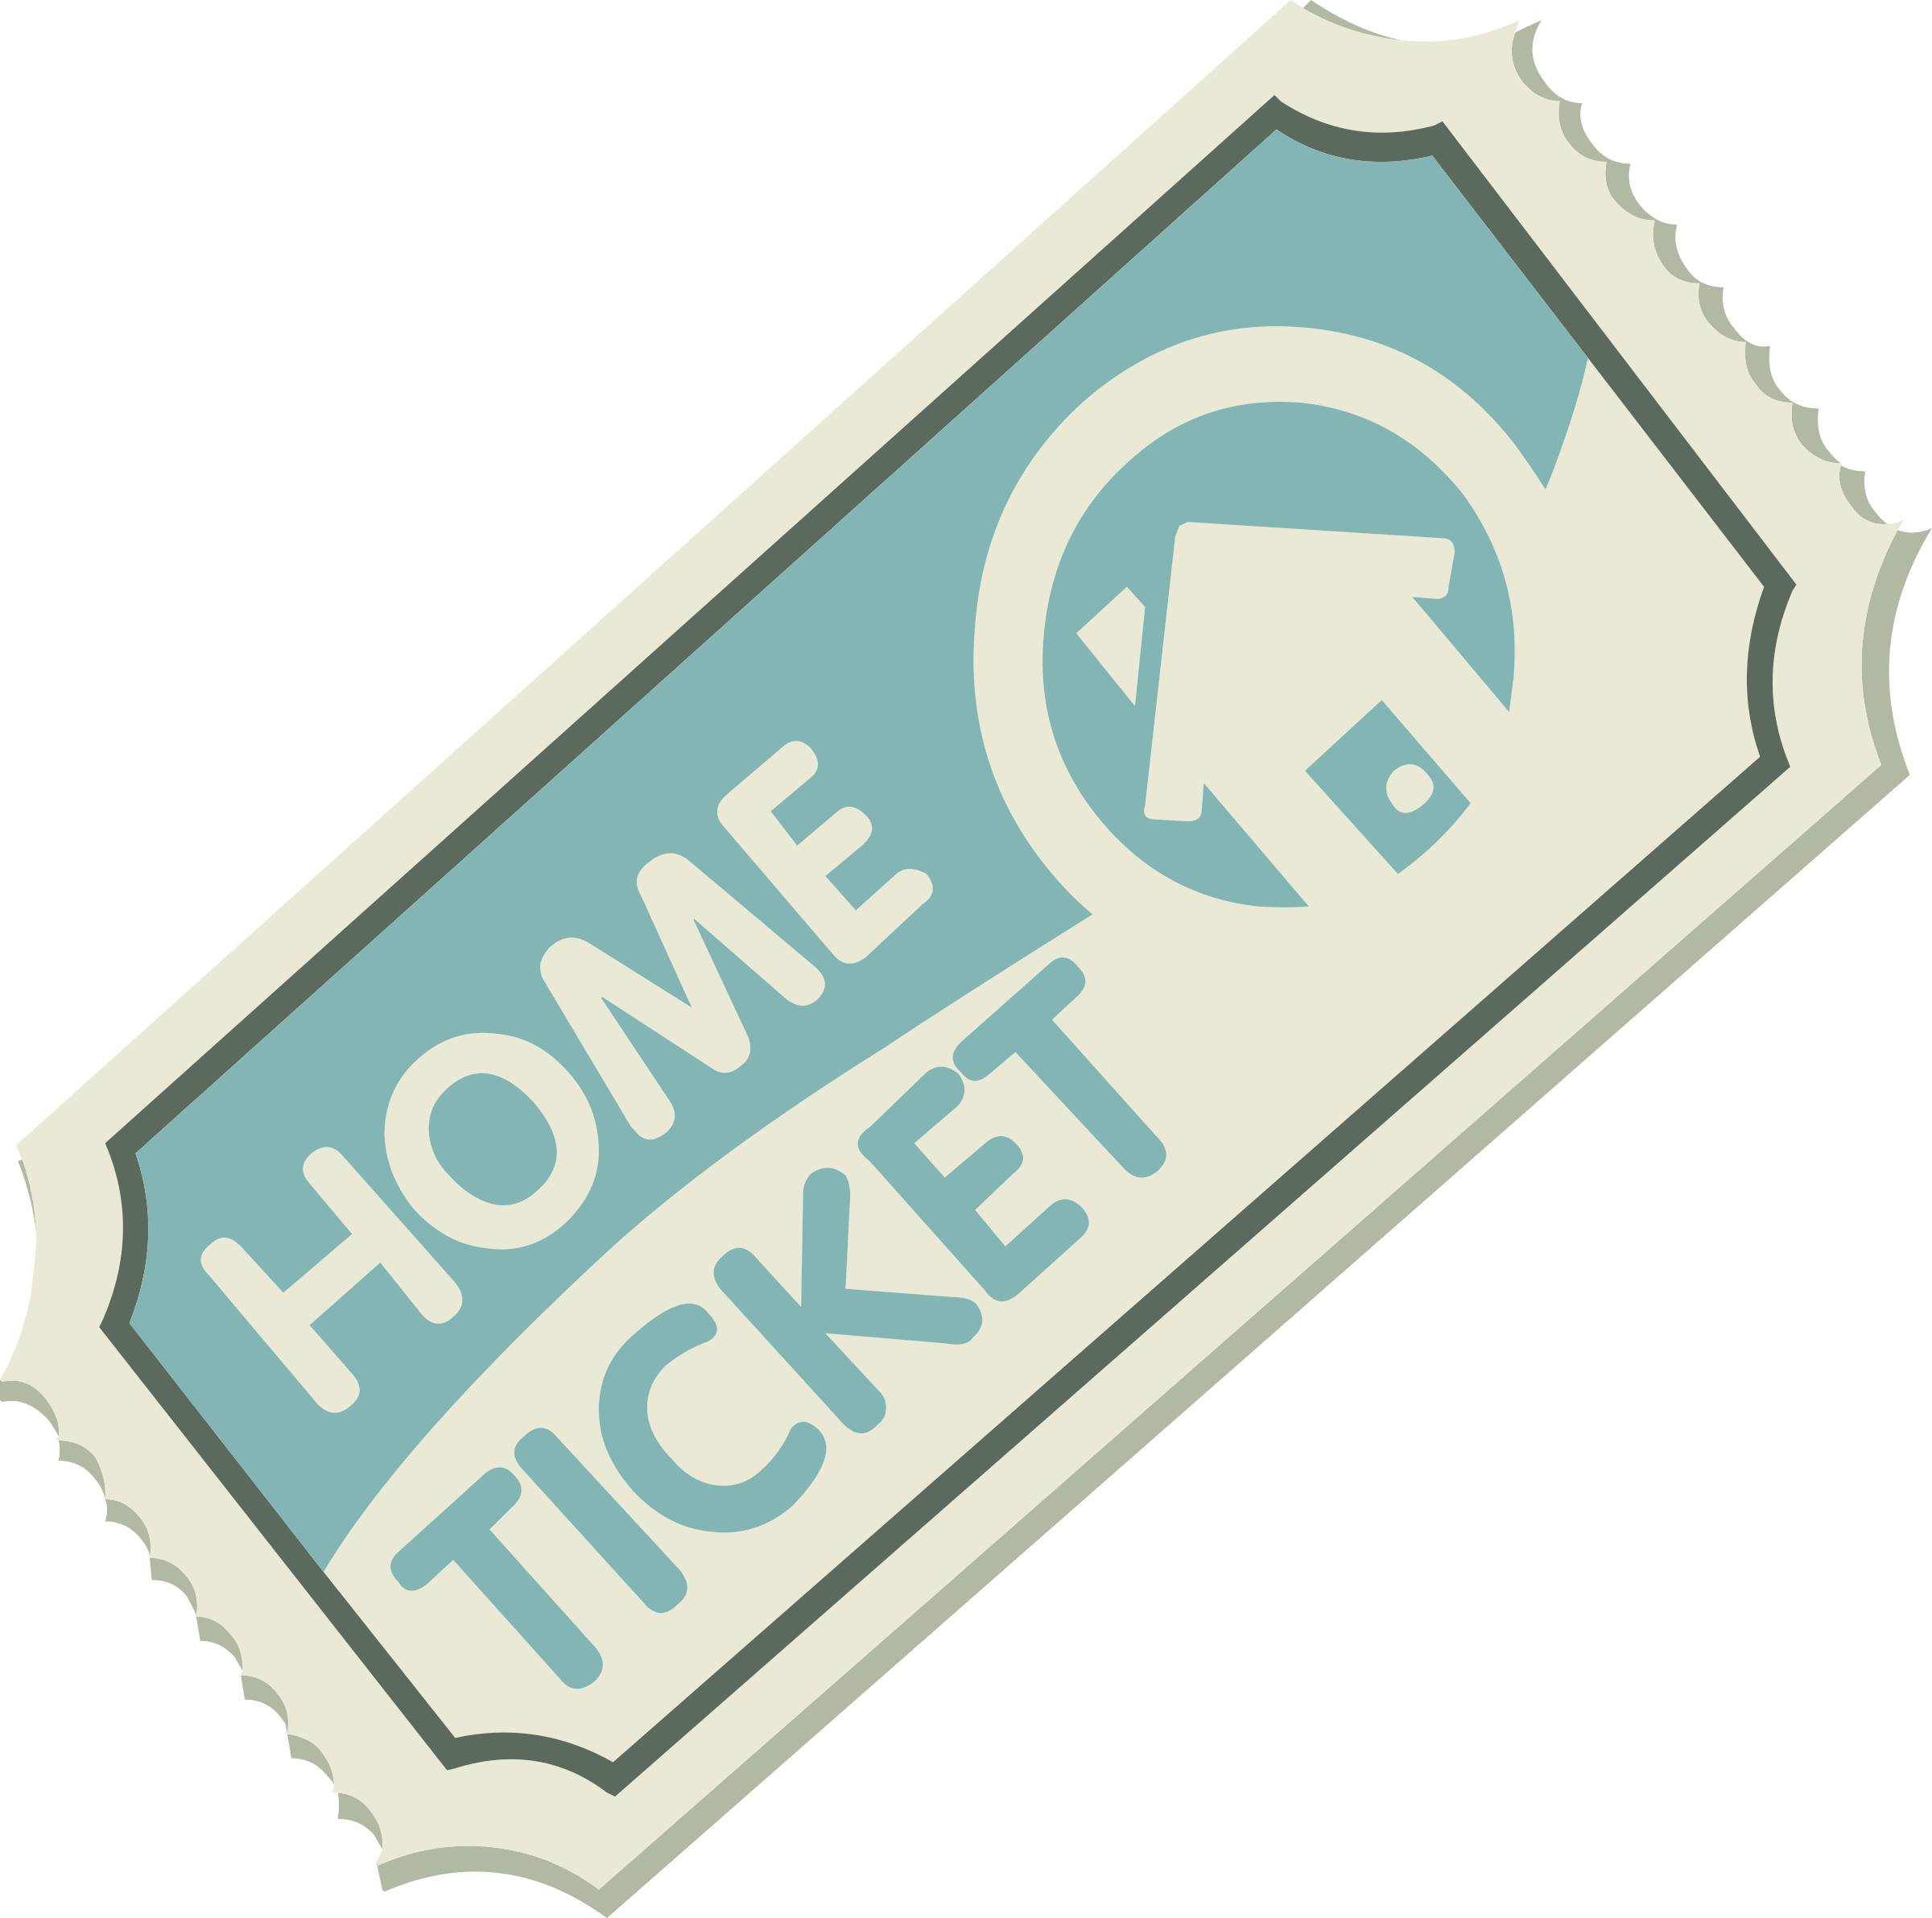 Misc Homestreet Ticket by glitch